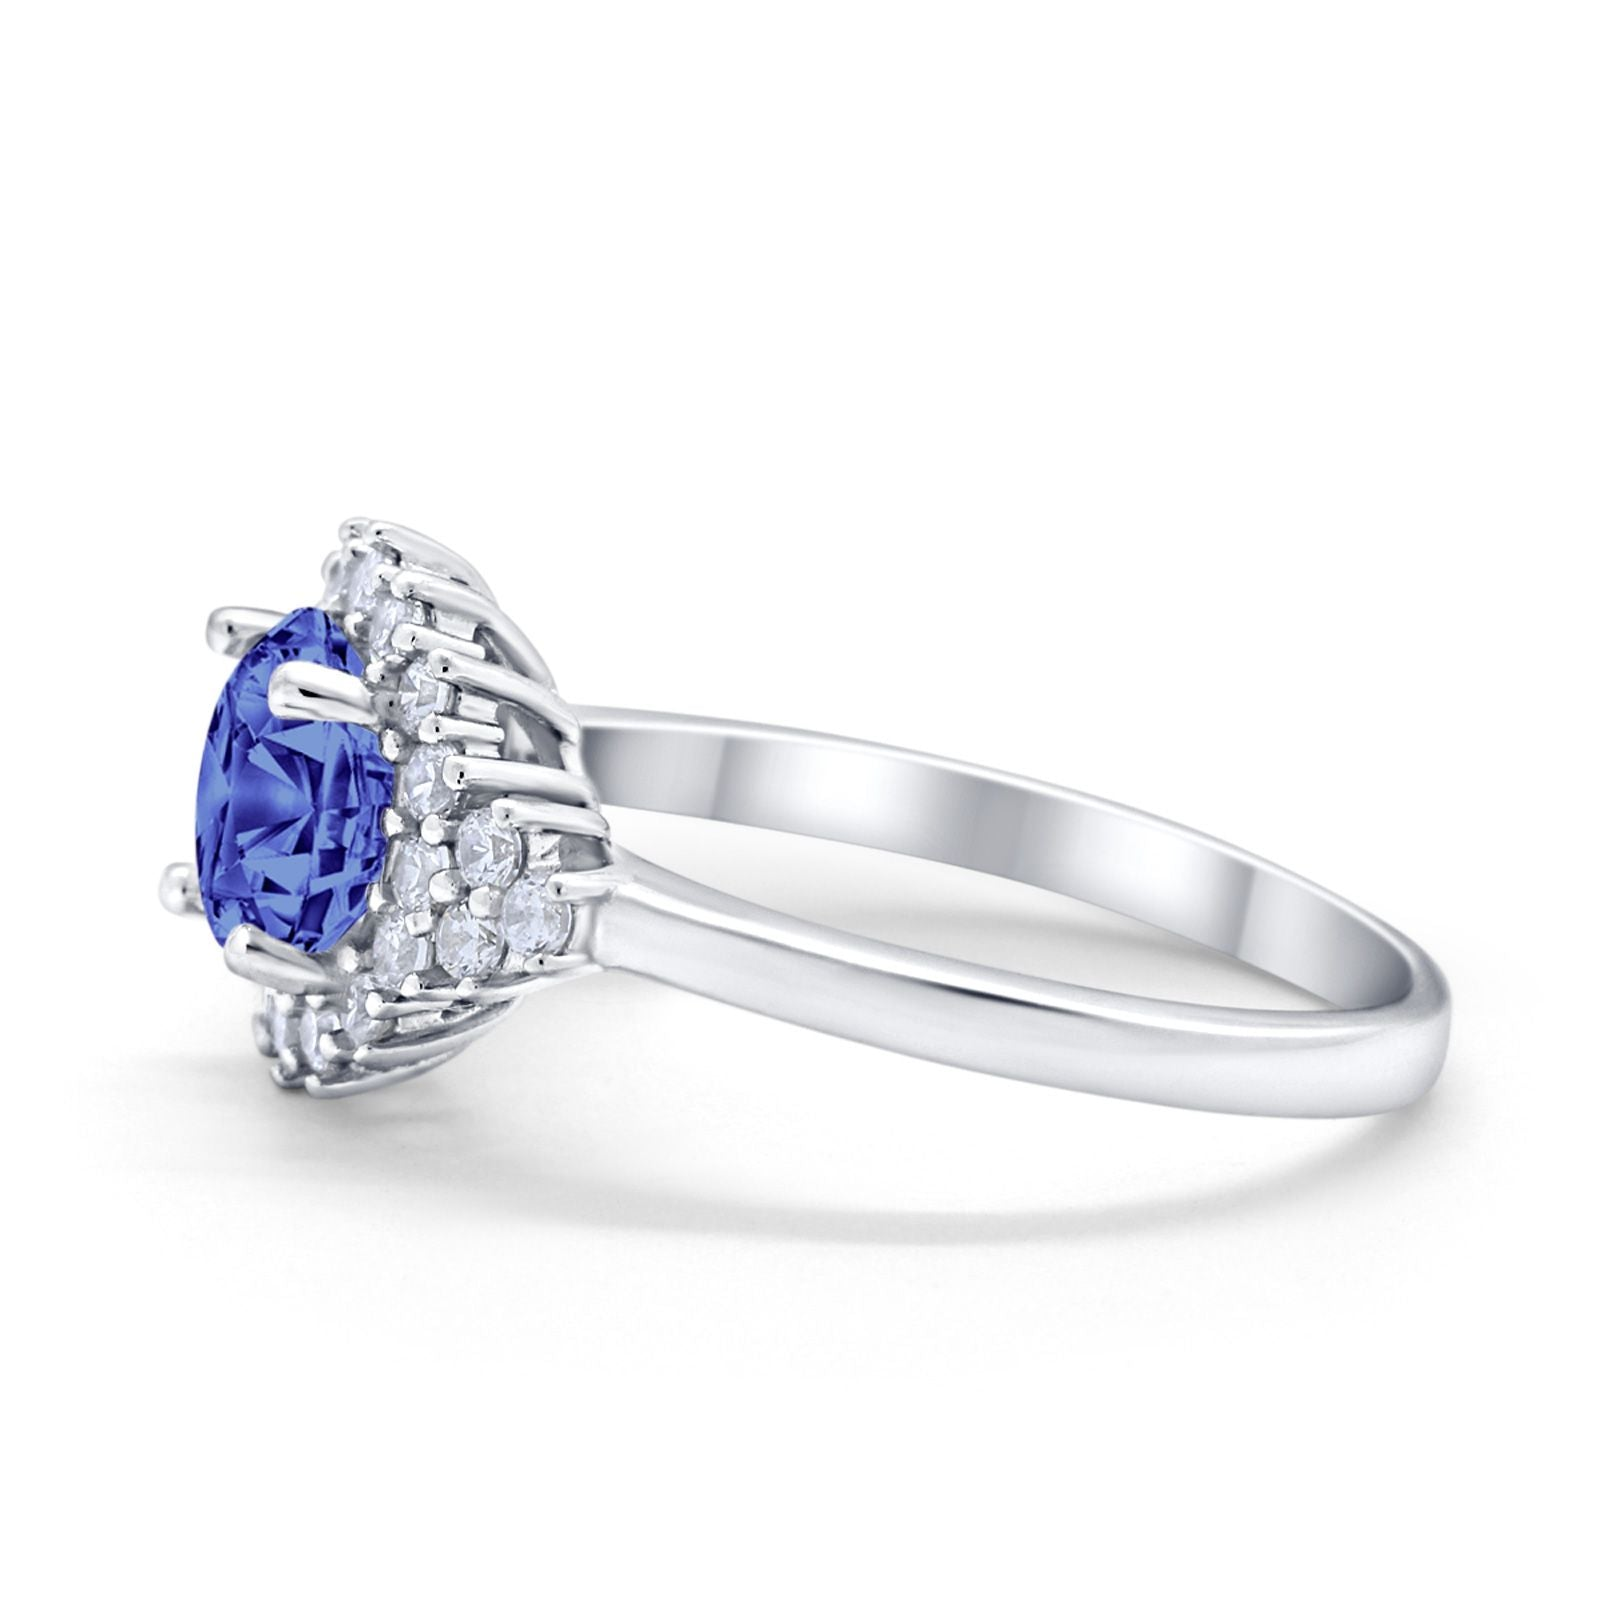 Halo Vintage Style Wedding Ring Round Simulated Cubic Zirconia 925 Sterling Silver